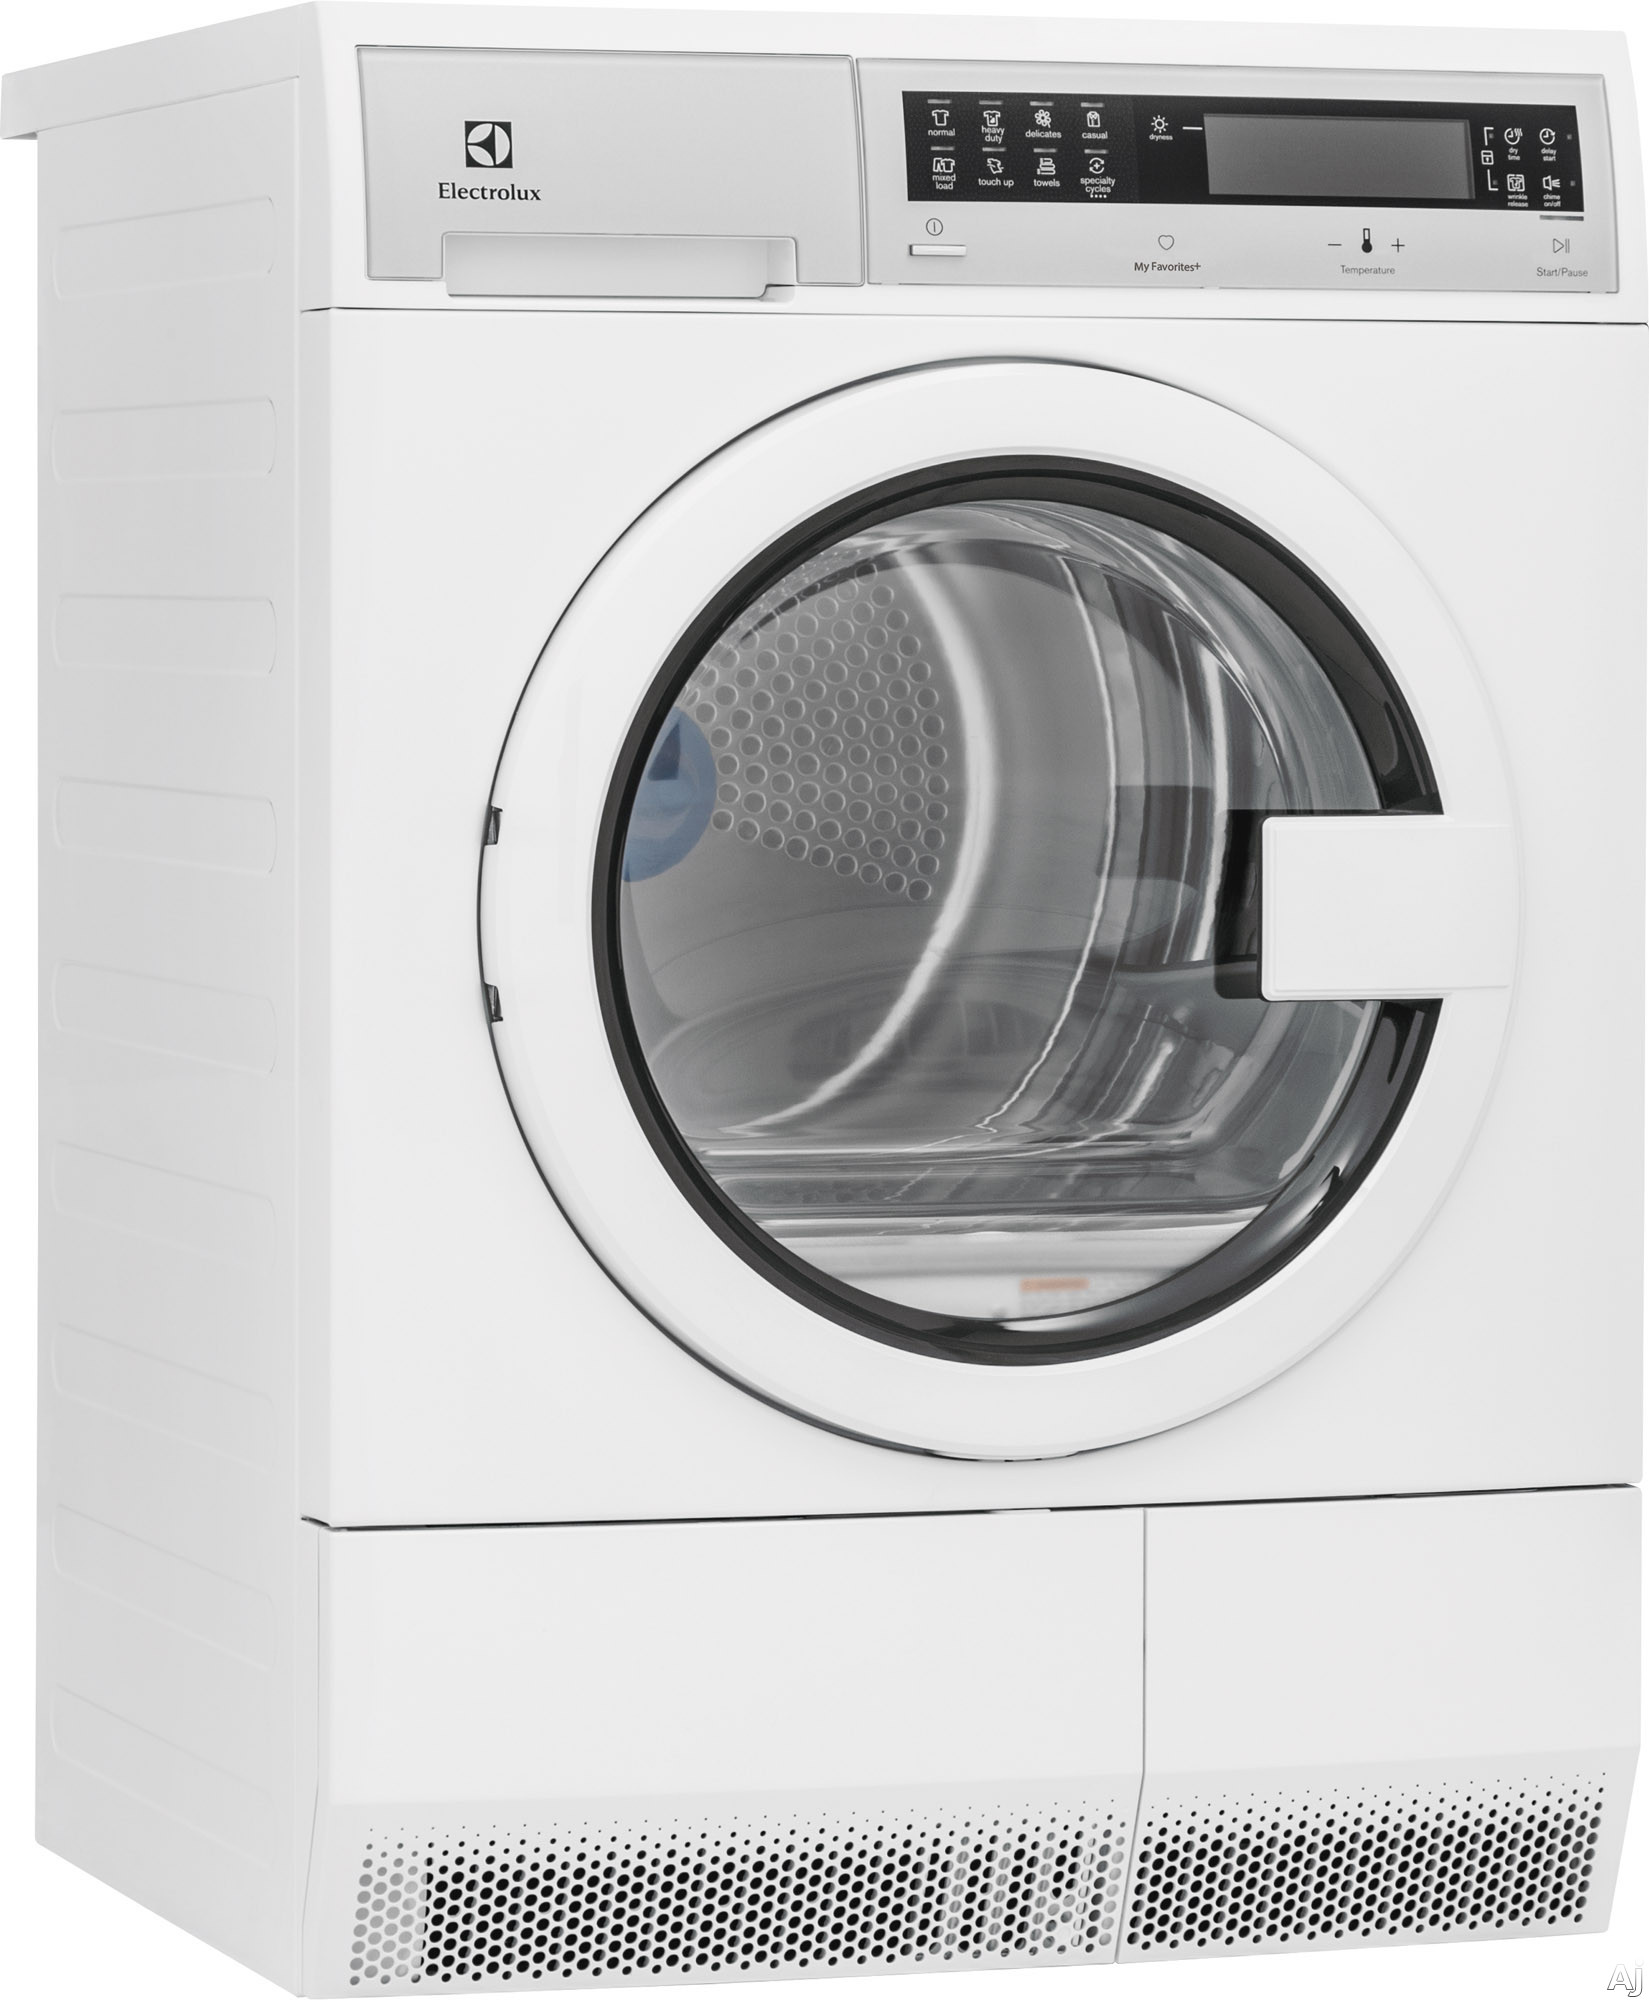 Electrolux Condenser Dryer Electrolux Eied200qsw 24 Quot Ventless Electric Dryer With 4 3